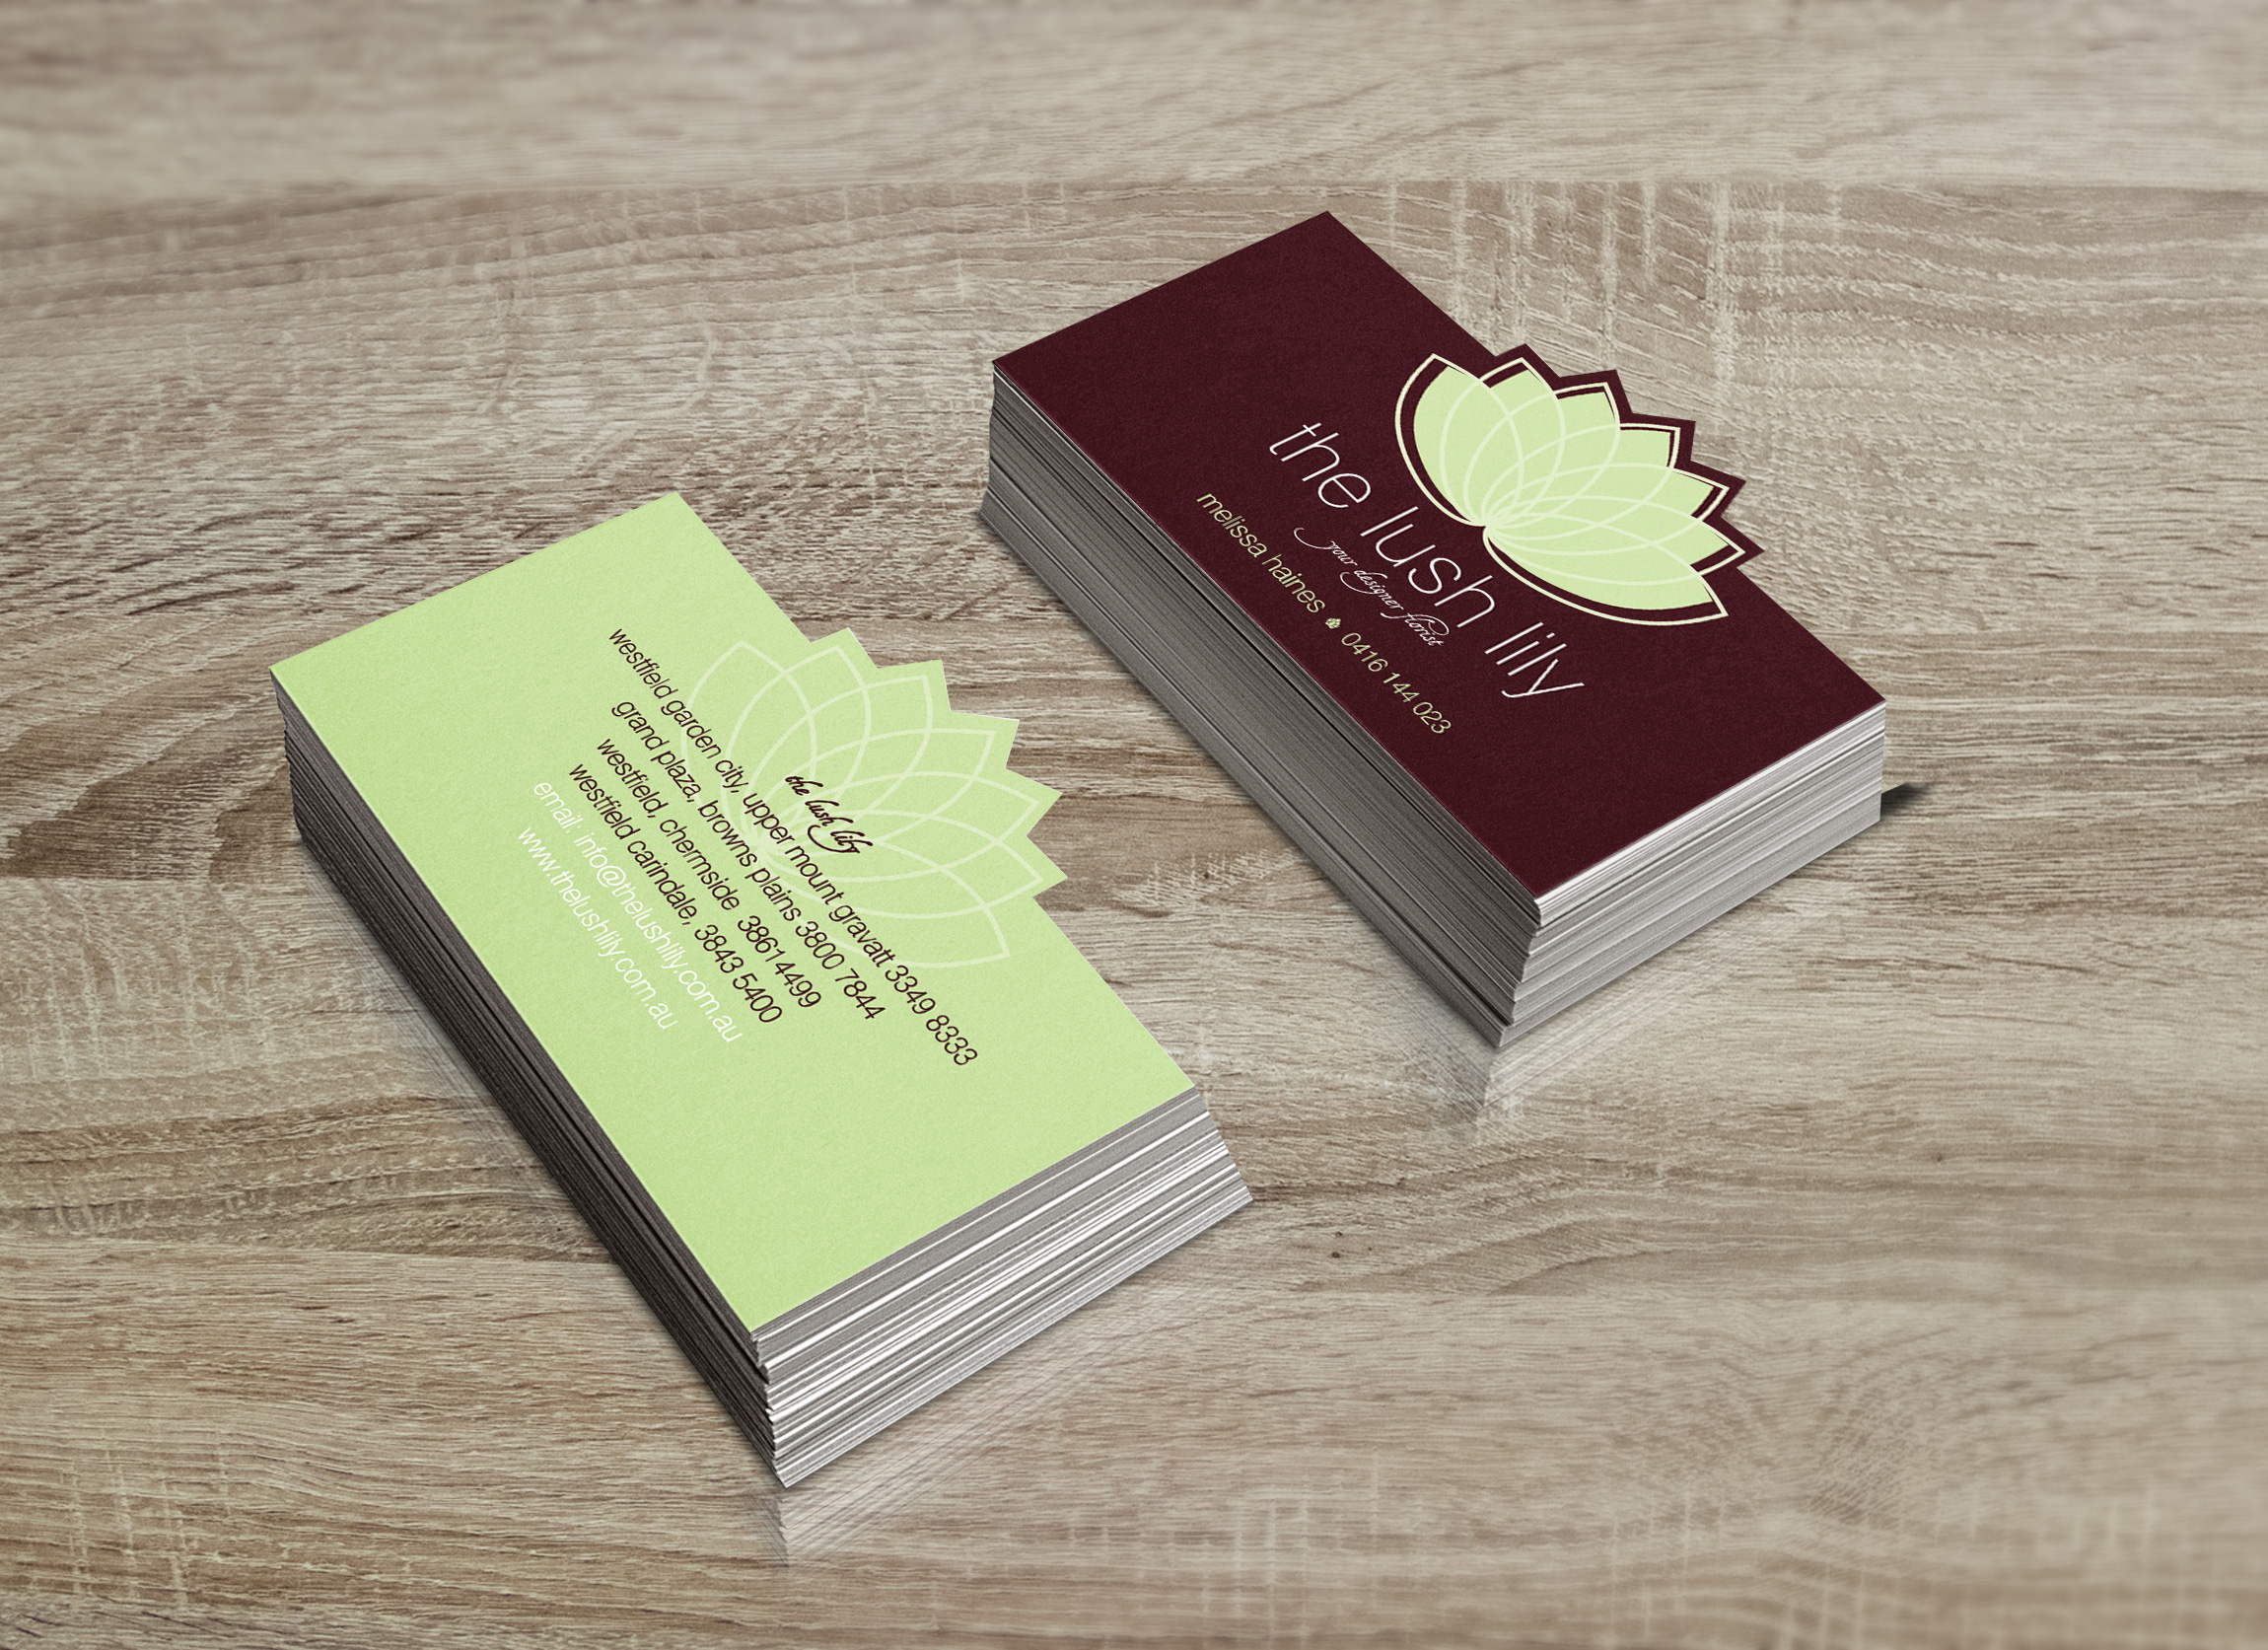 IBS Cards - A Die Cut Business Card That Stands Out